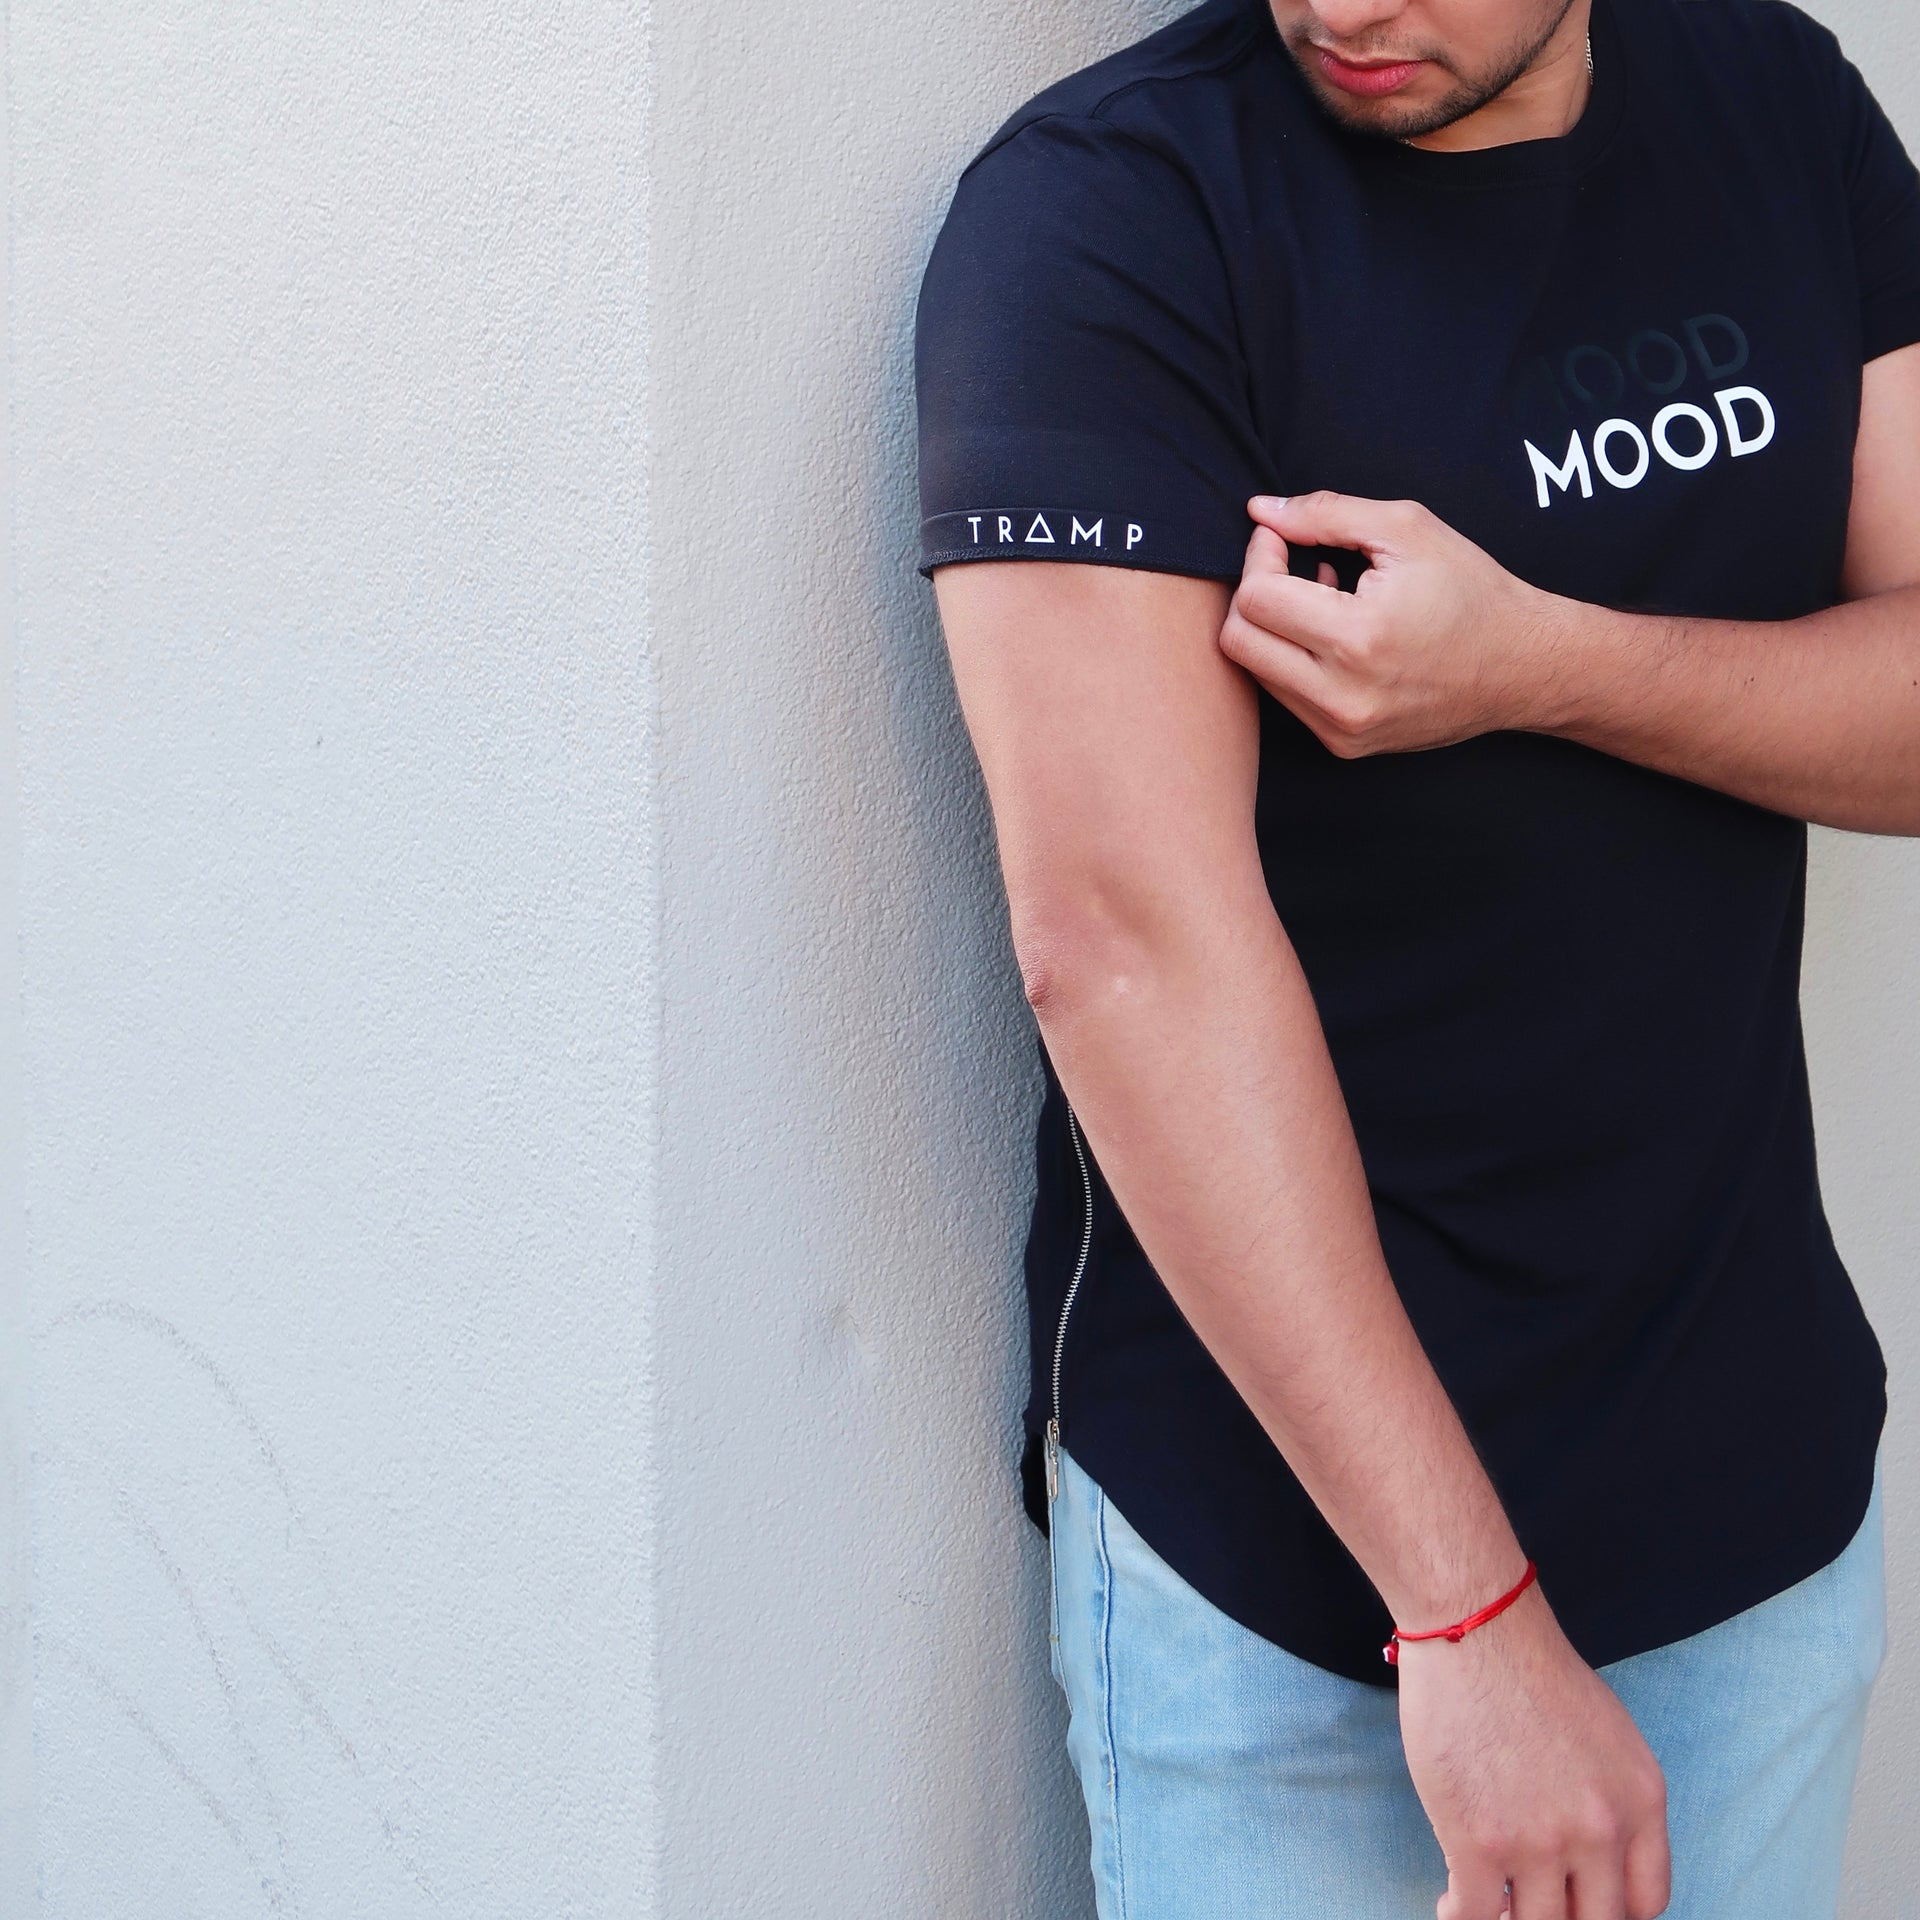 WOOD x MOOD Long Line Limited Edition